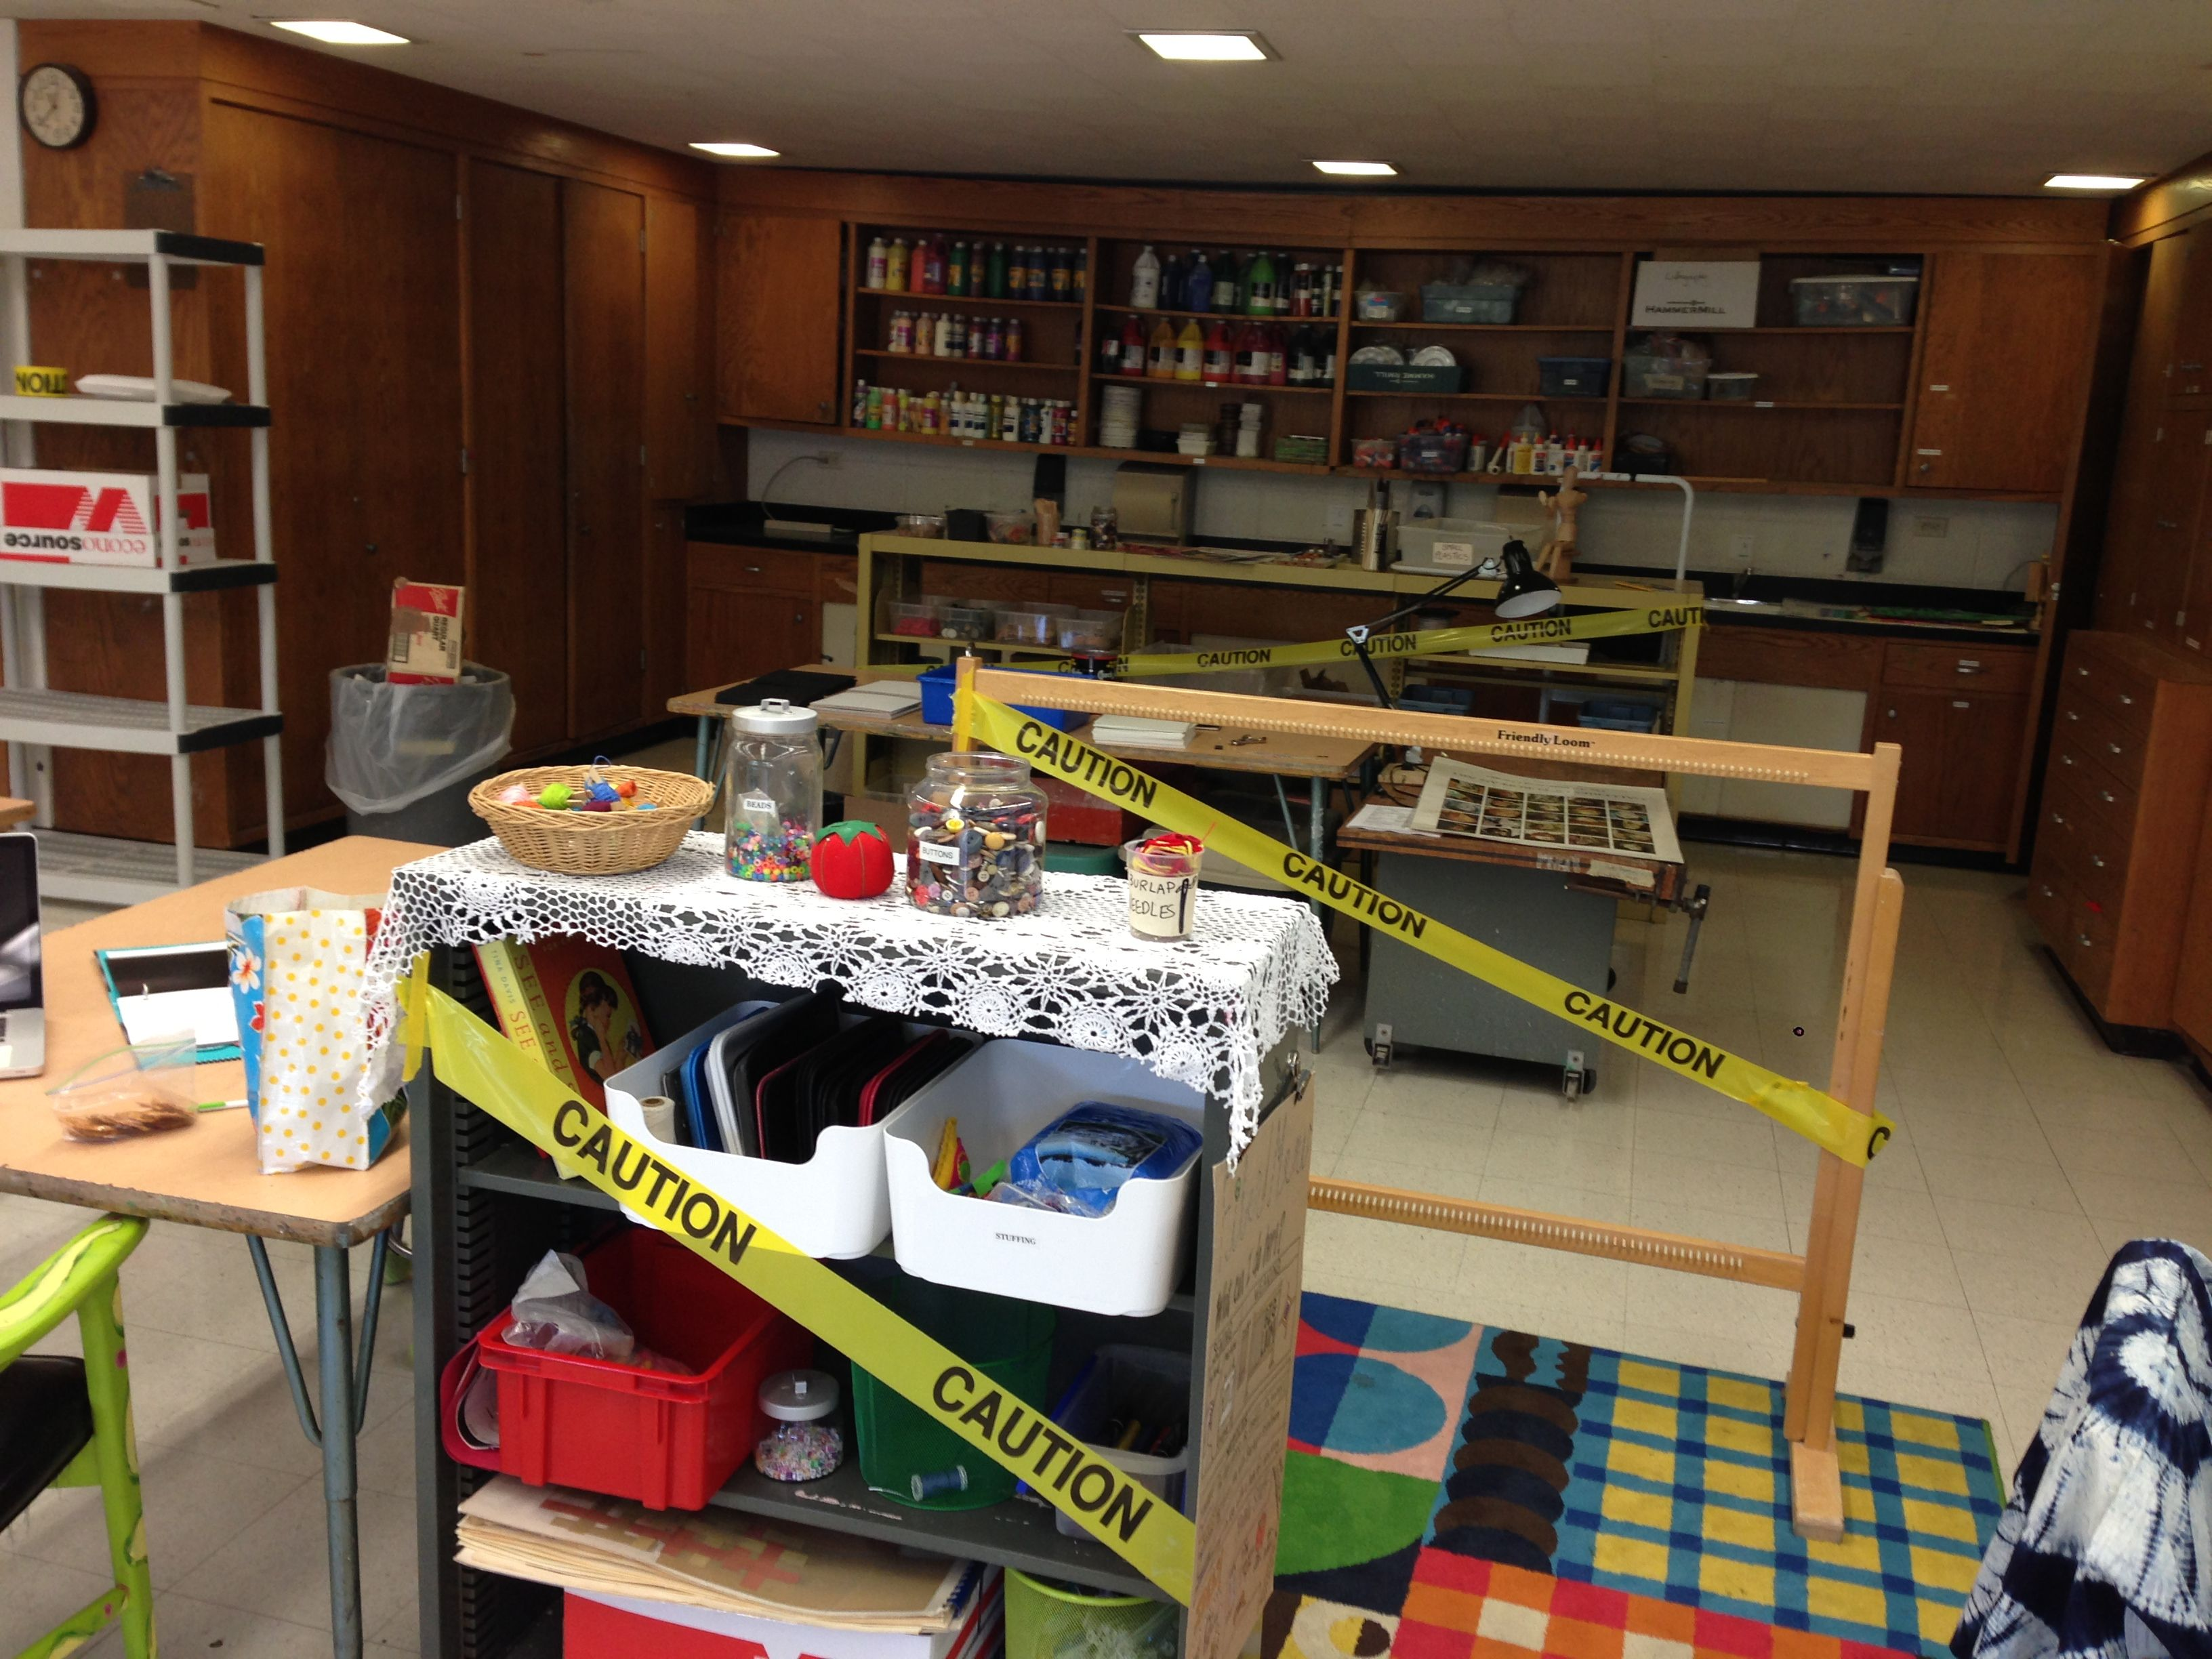 caution tape to mark studio centers that are not yet open